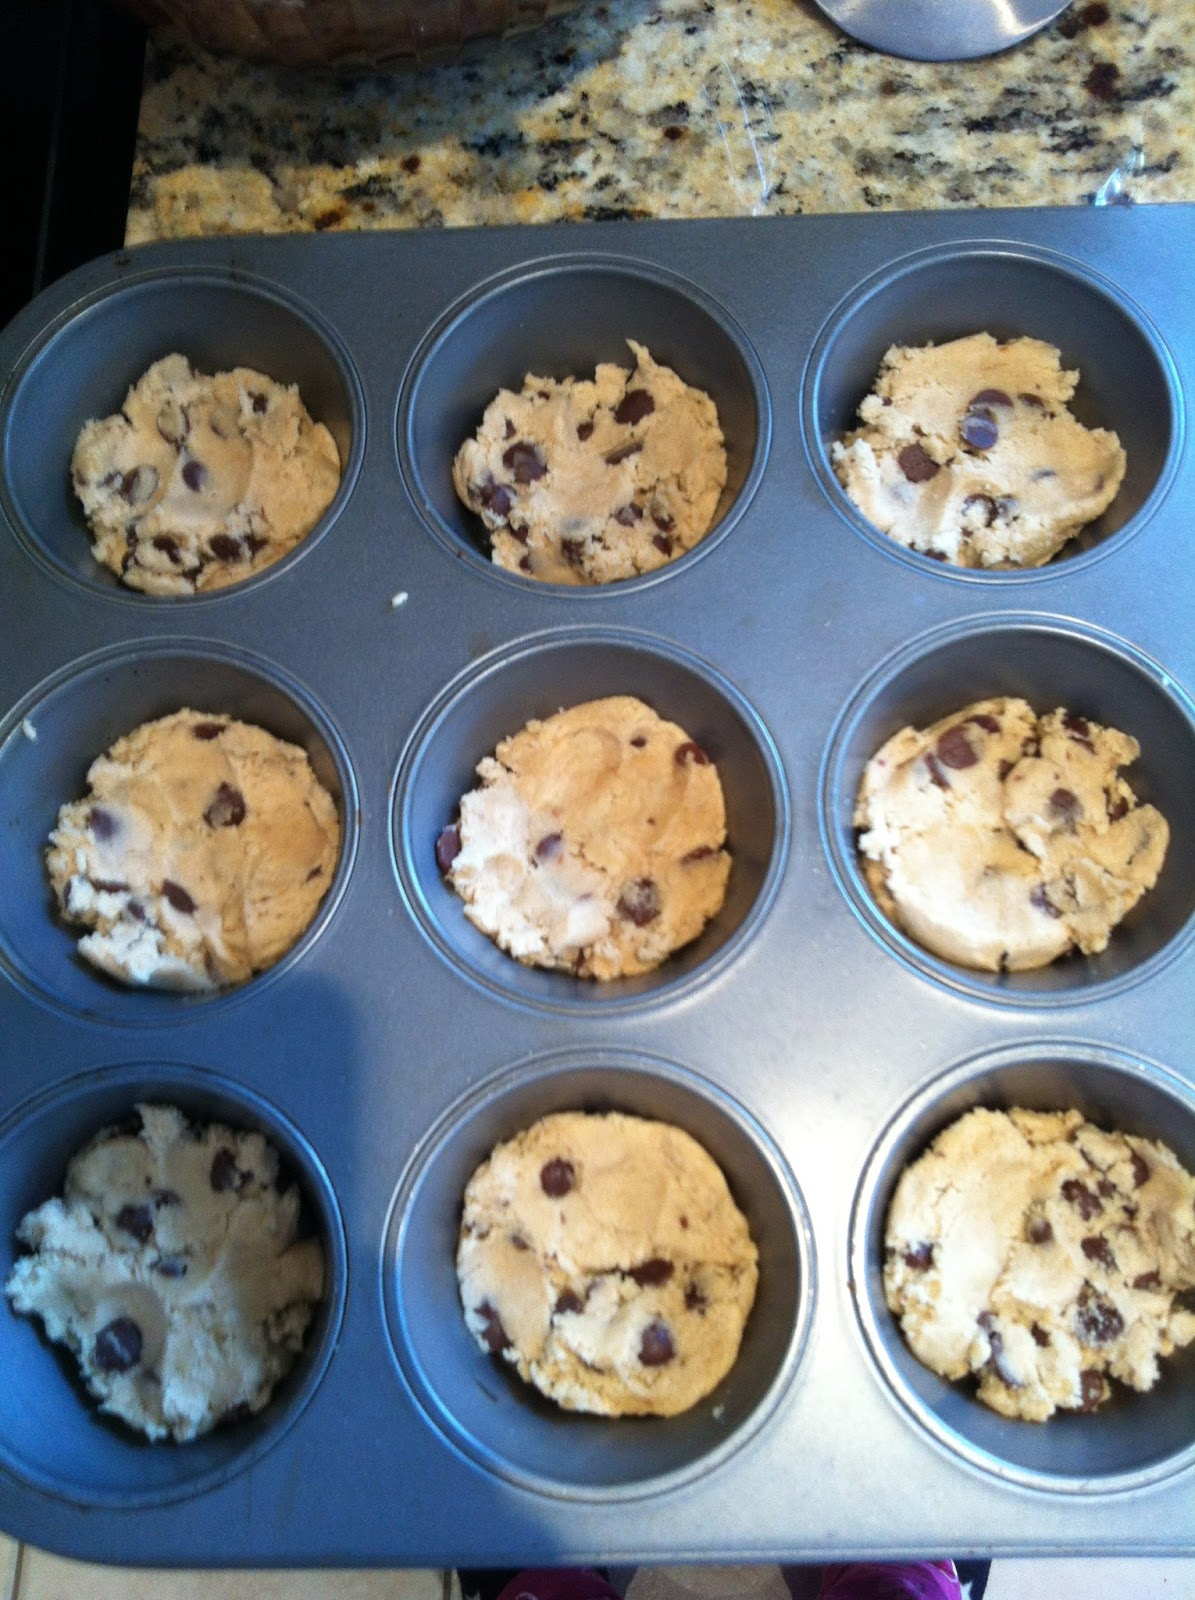 I M Doing This Cause I Want To Chocolate Chip Cookie